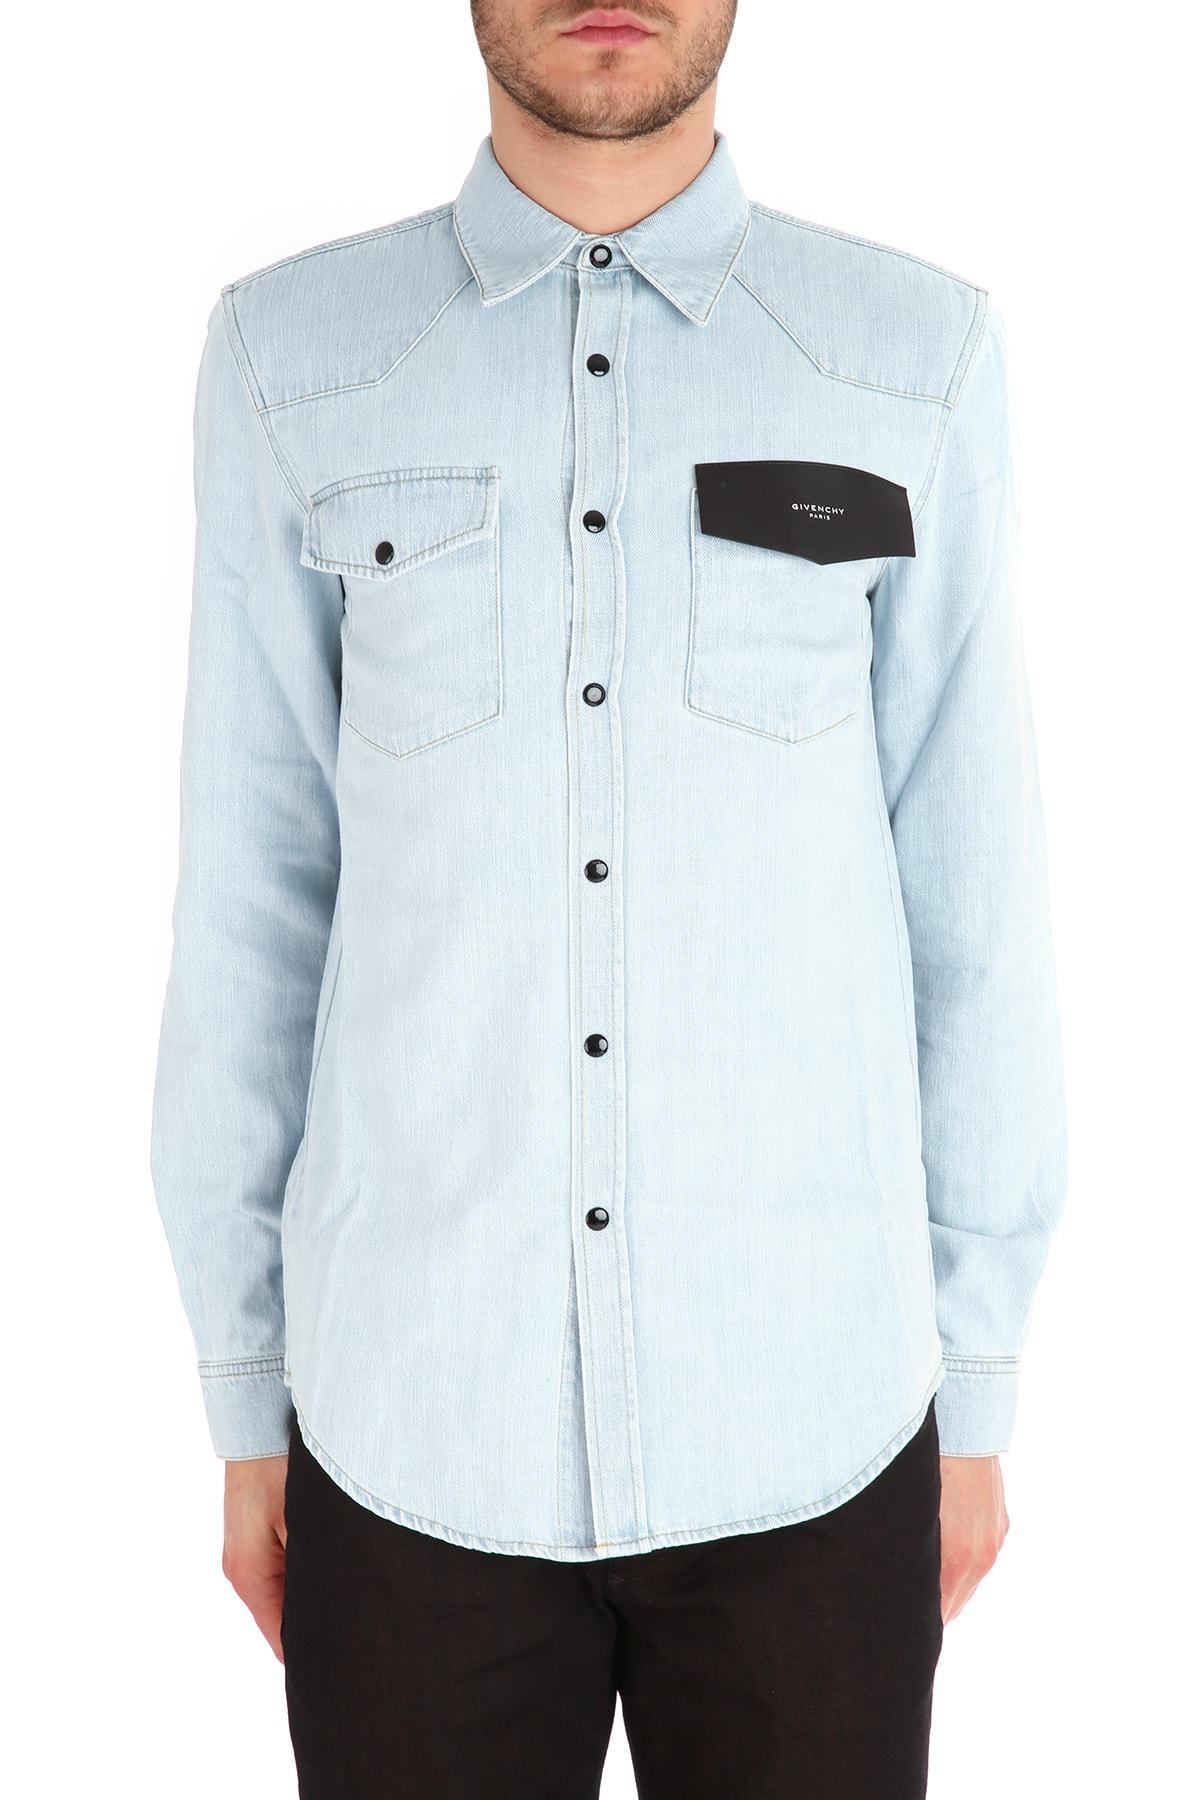 【関税送料込】 GIVENCHY 16SS DENIM SHIRT/SLIM FIT/LIGHT BLUE